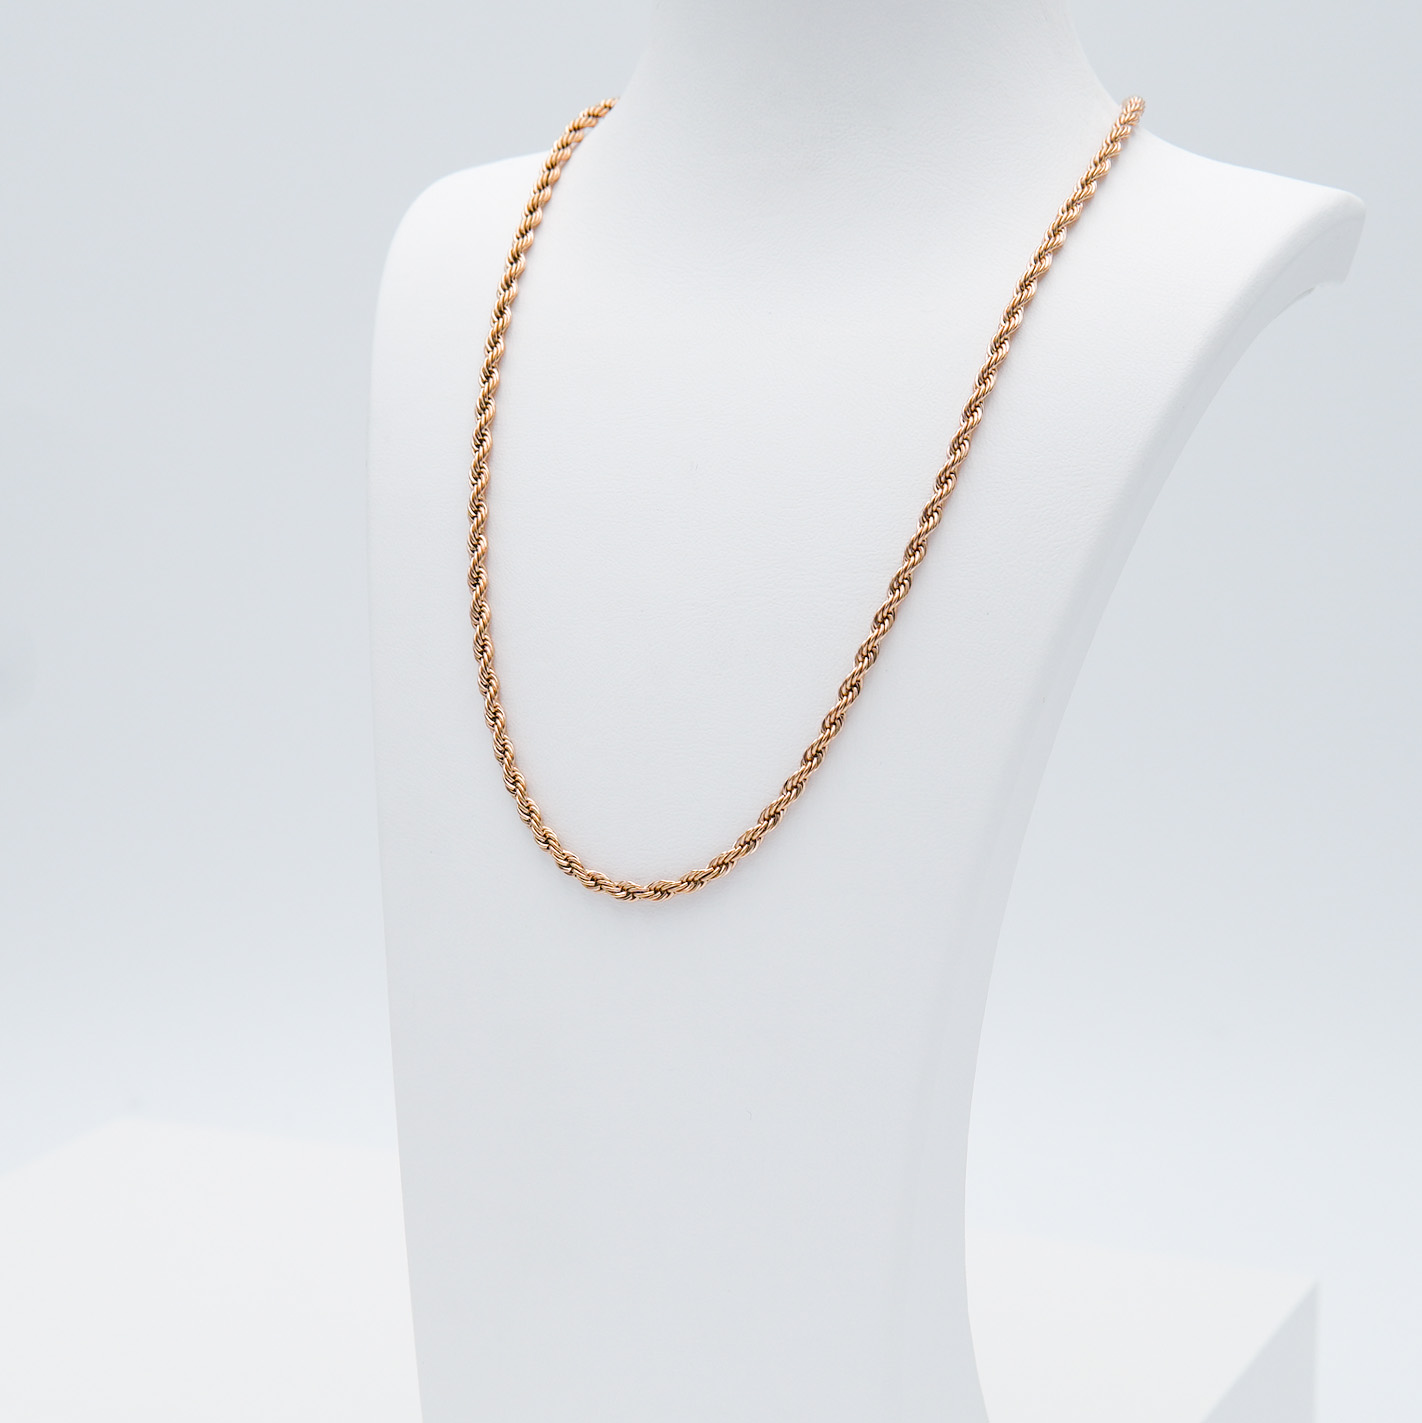 1- Stronger Together Necklace Rose Edition Halsband Modern and trendy Necklace and women jewelry and accessories from SWEVALI fashion Sweden